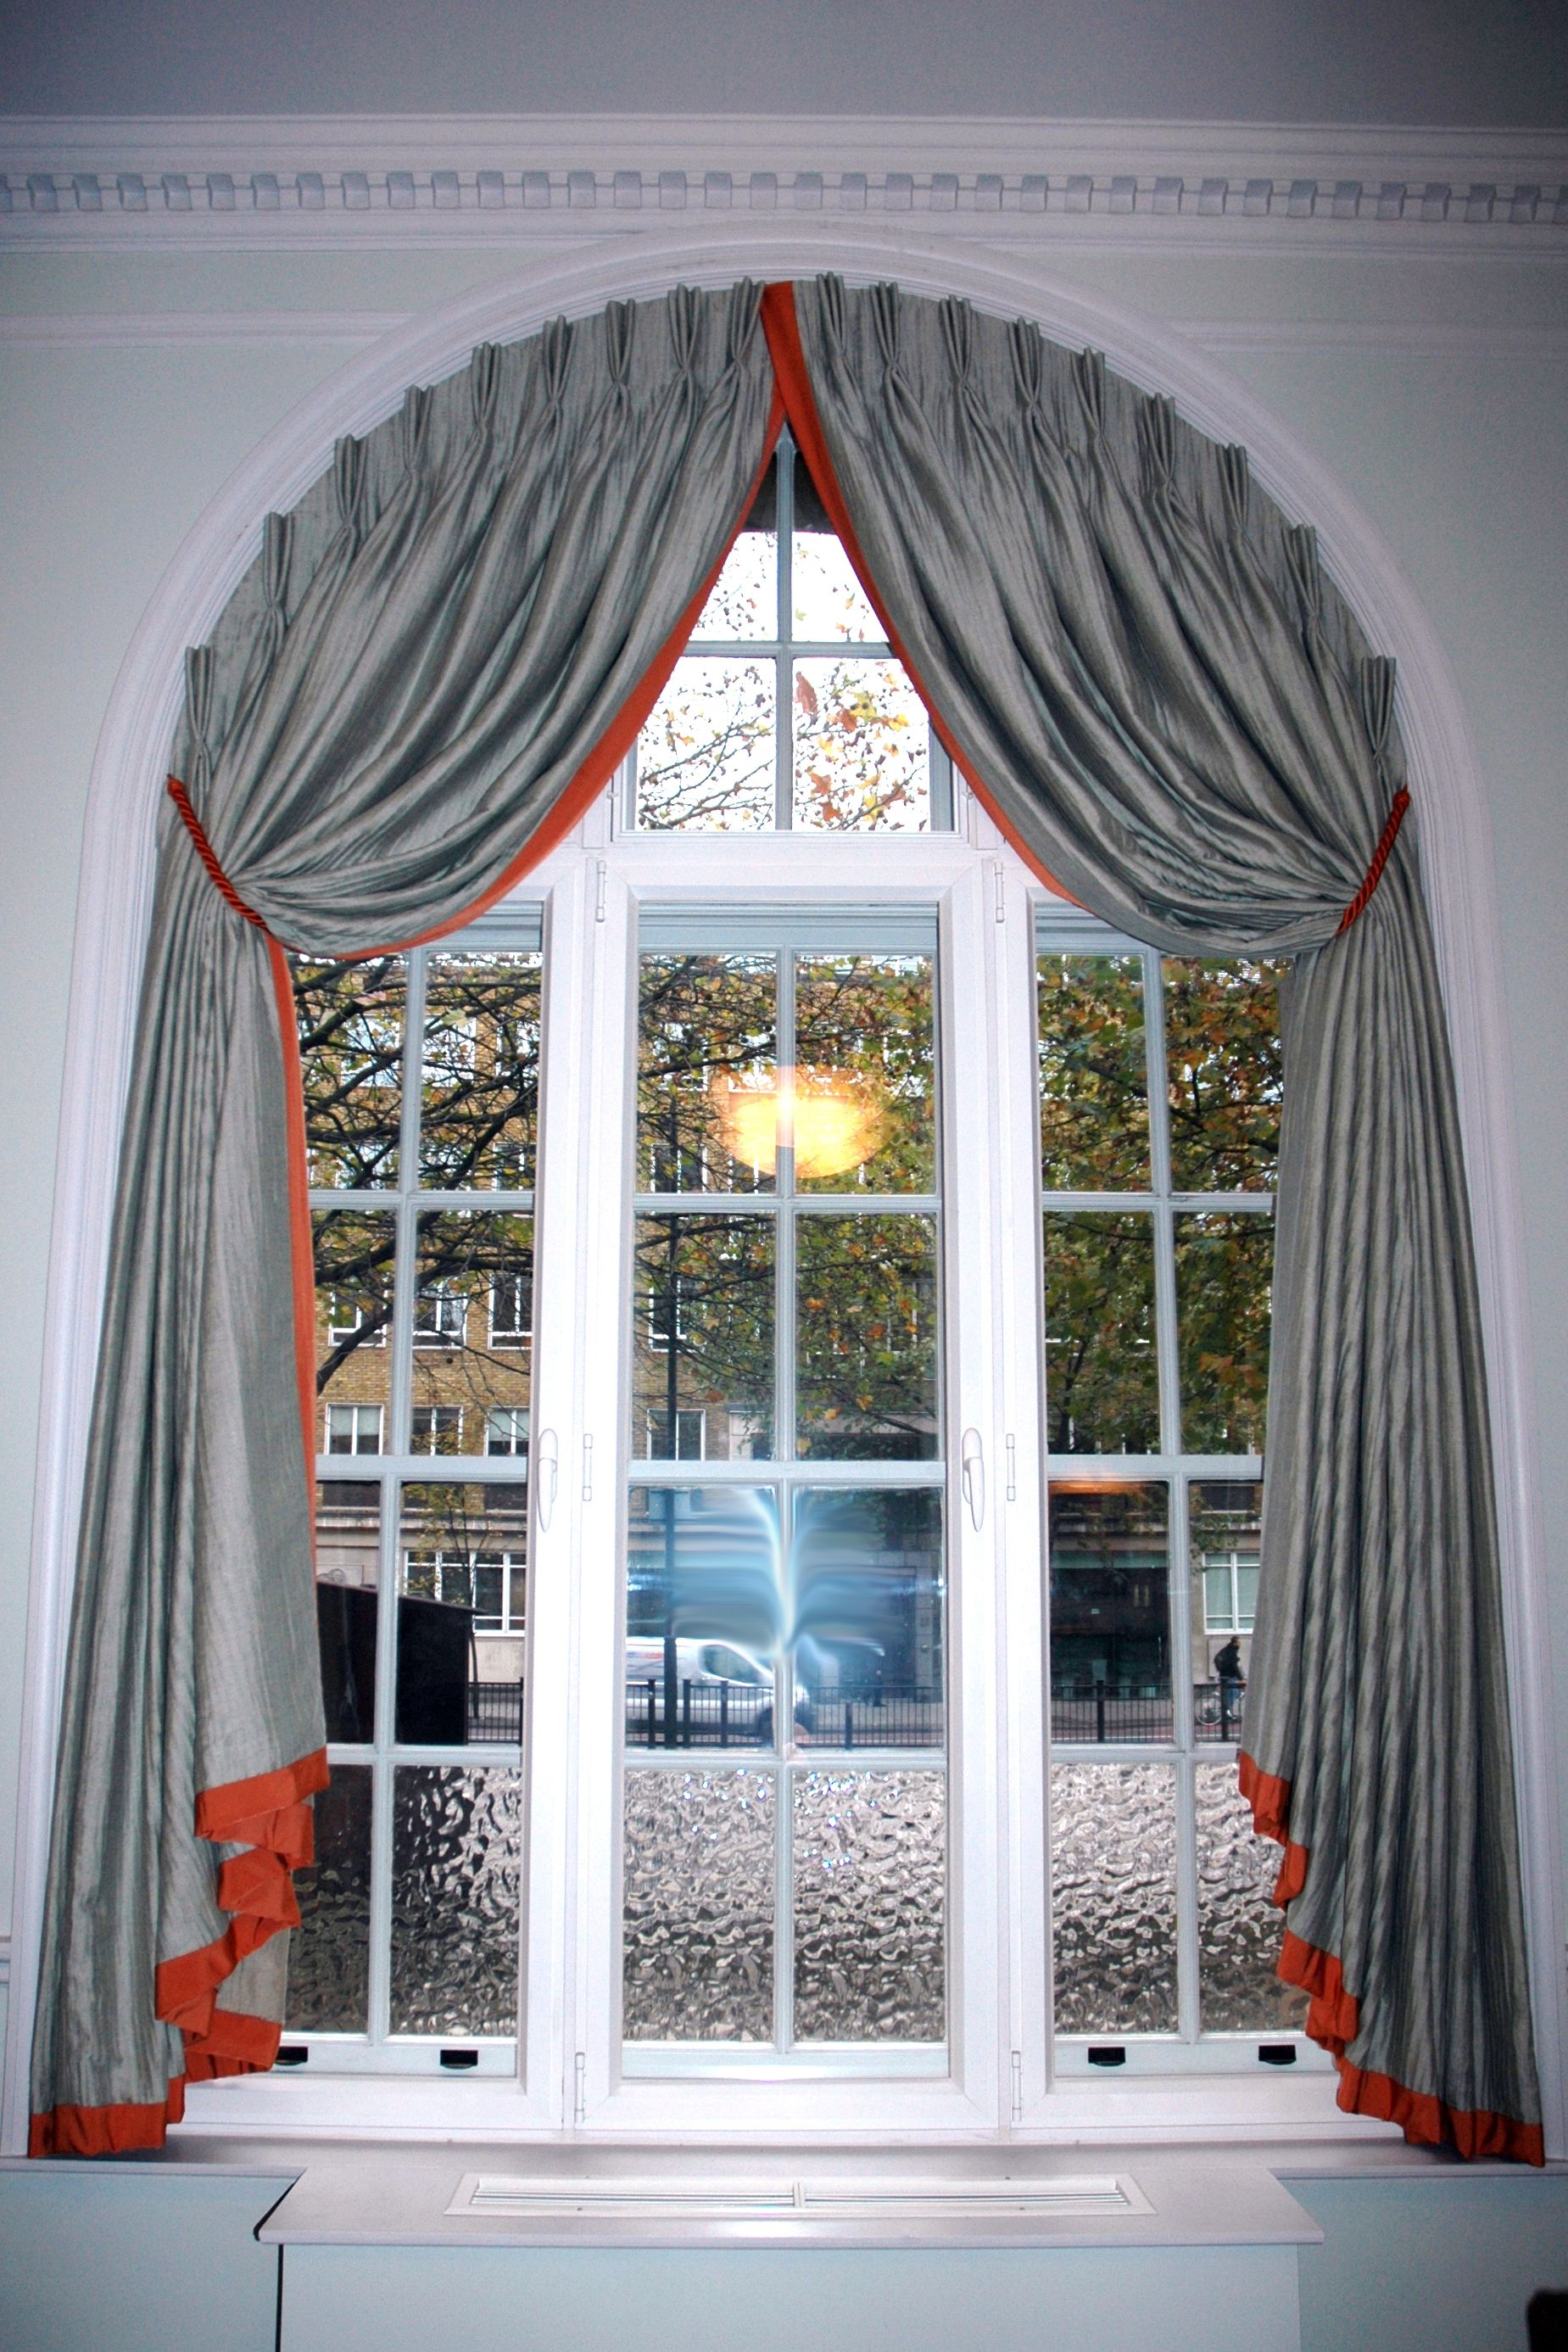 Window treatment ideas for arched windows  arch window curtain ideas  tv wall units  pinterest  arched